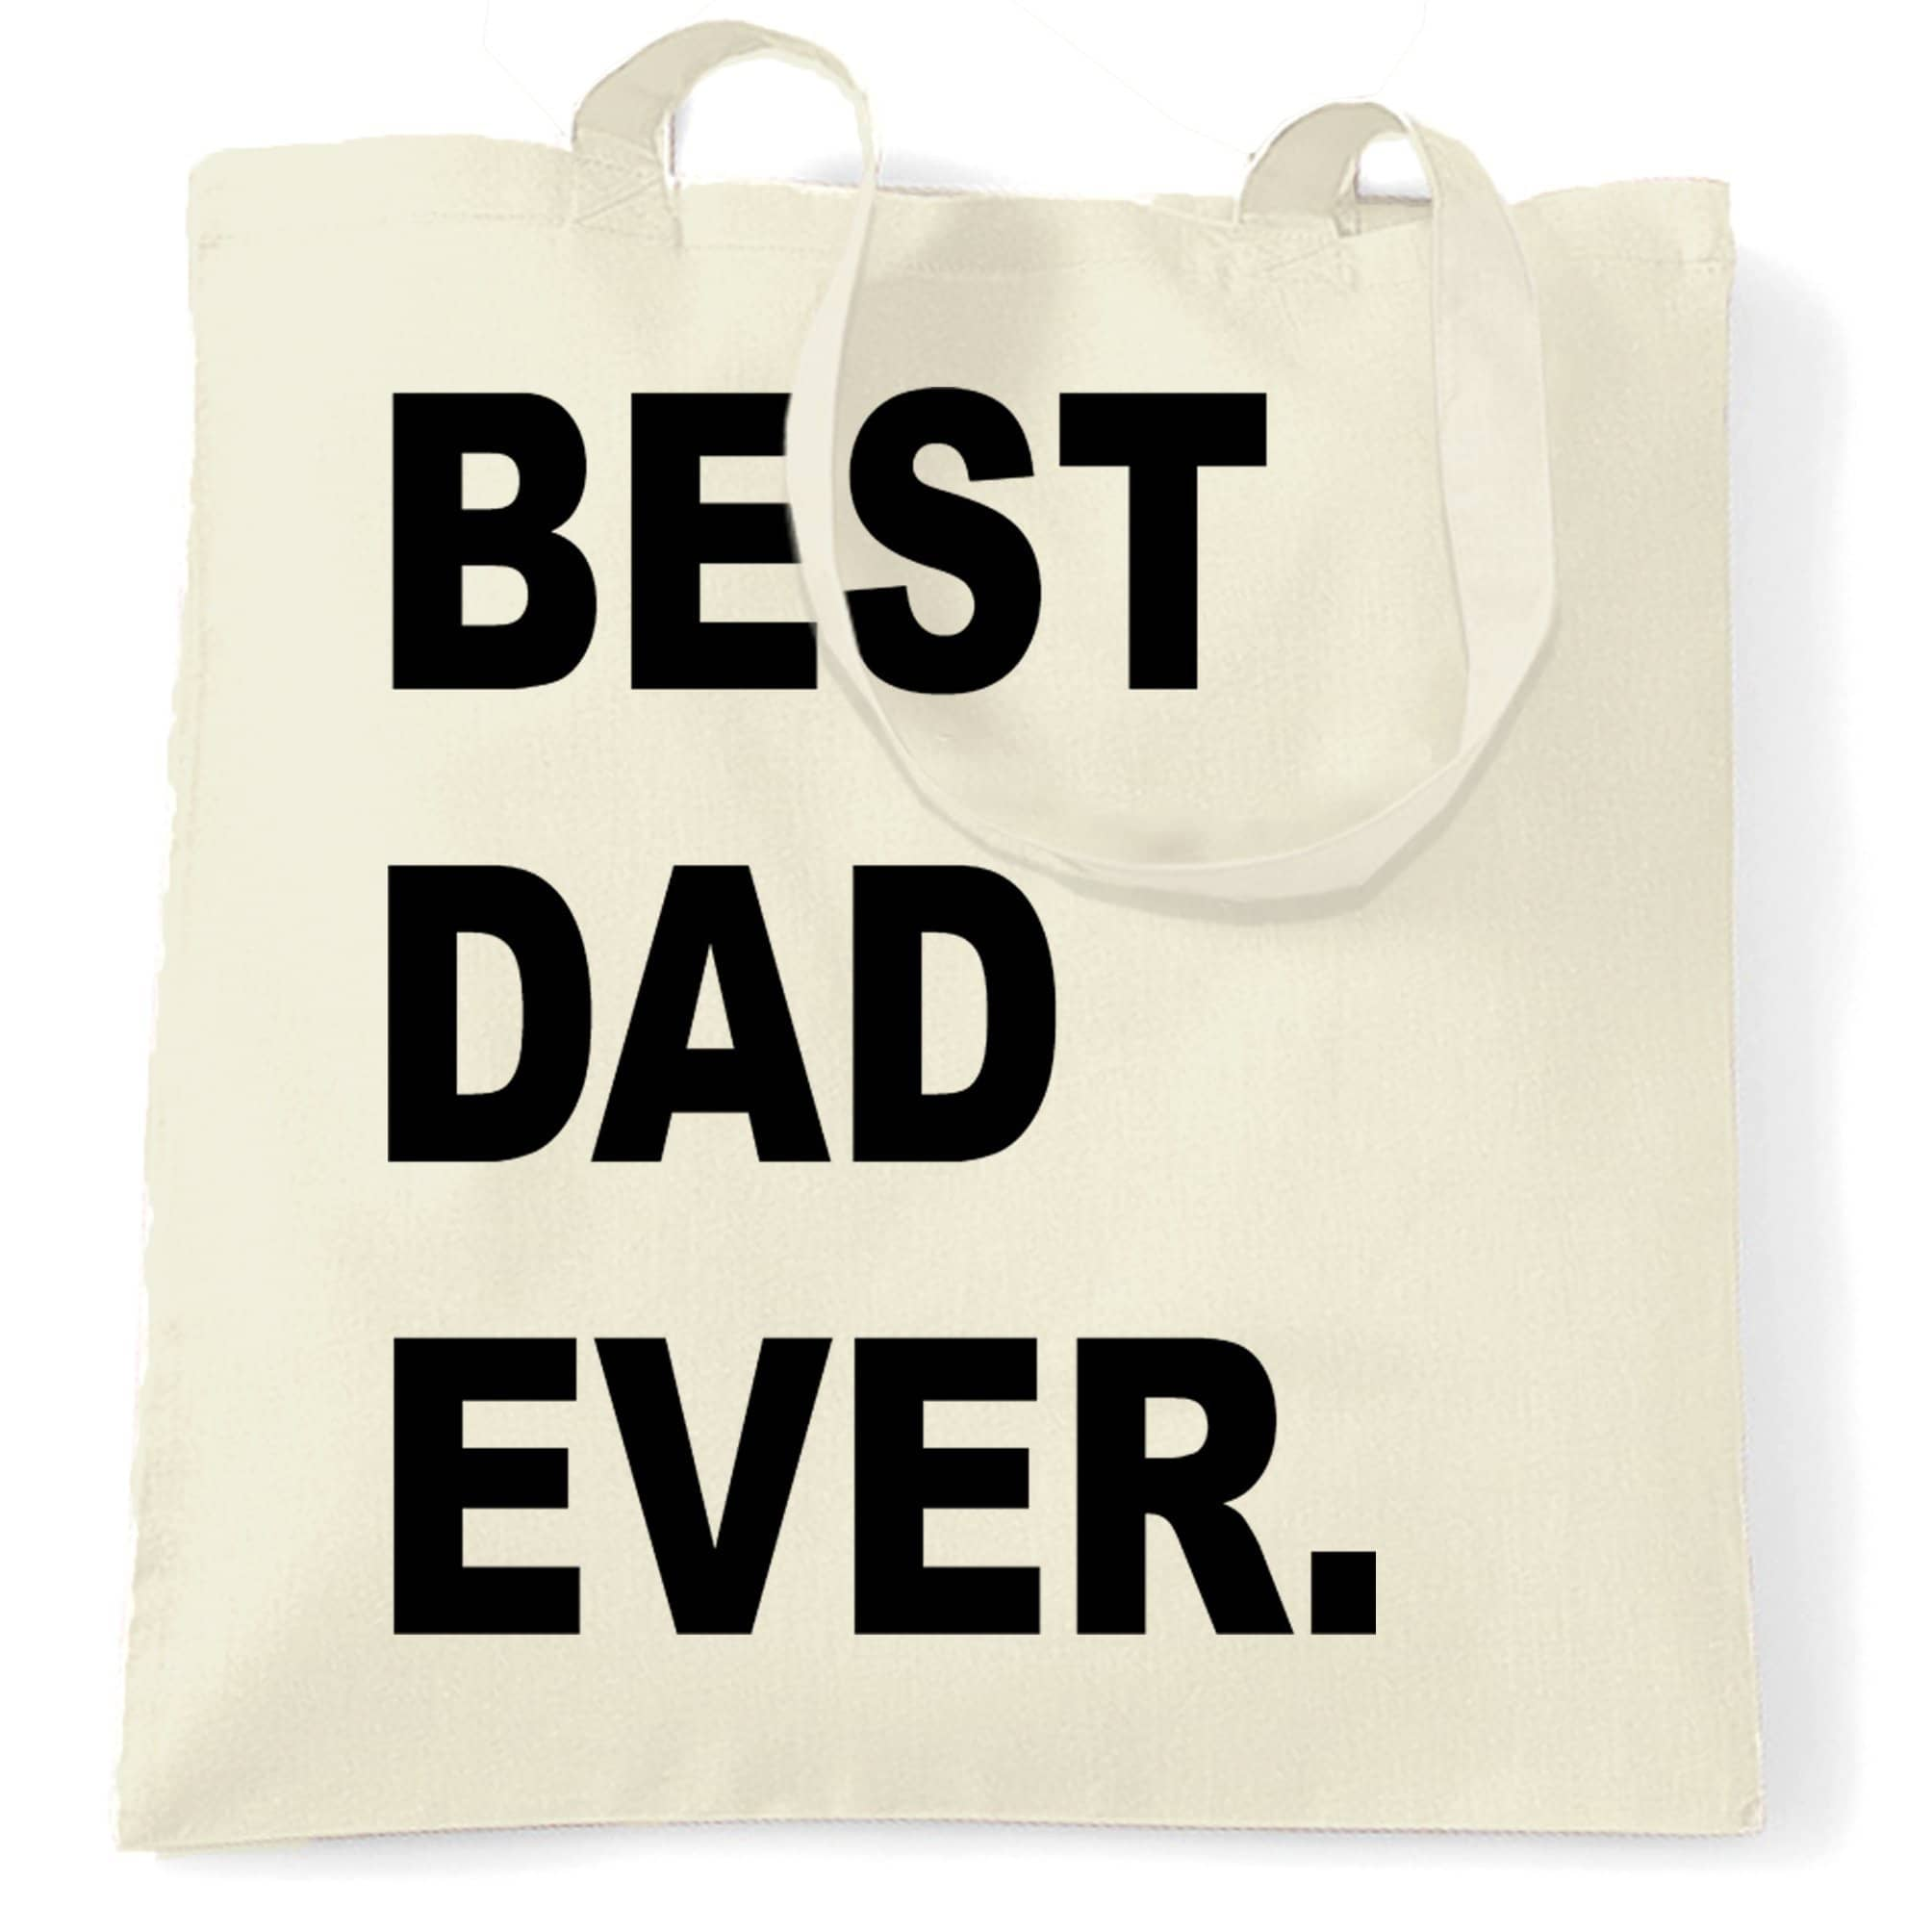 Best Dad Ever Tote Bag Parent Family Slogan